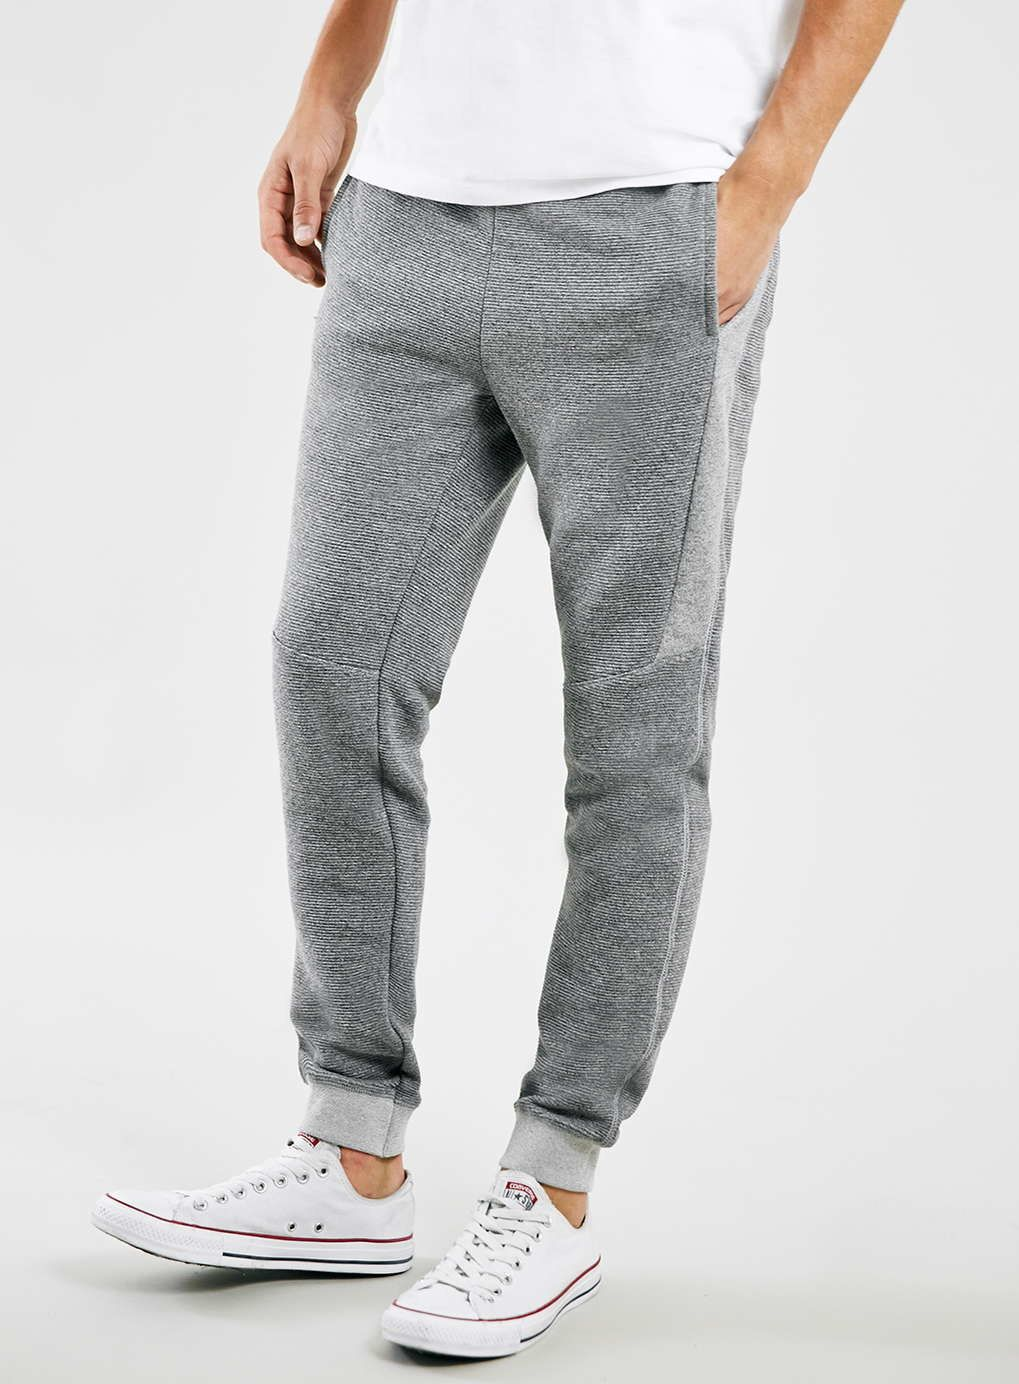 6728a04abb97 9 Socially-Acceptable Pairs of Sweatpants in 2019